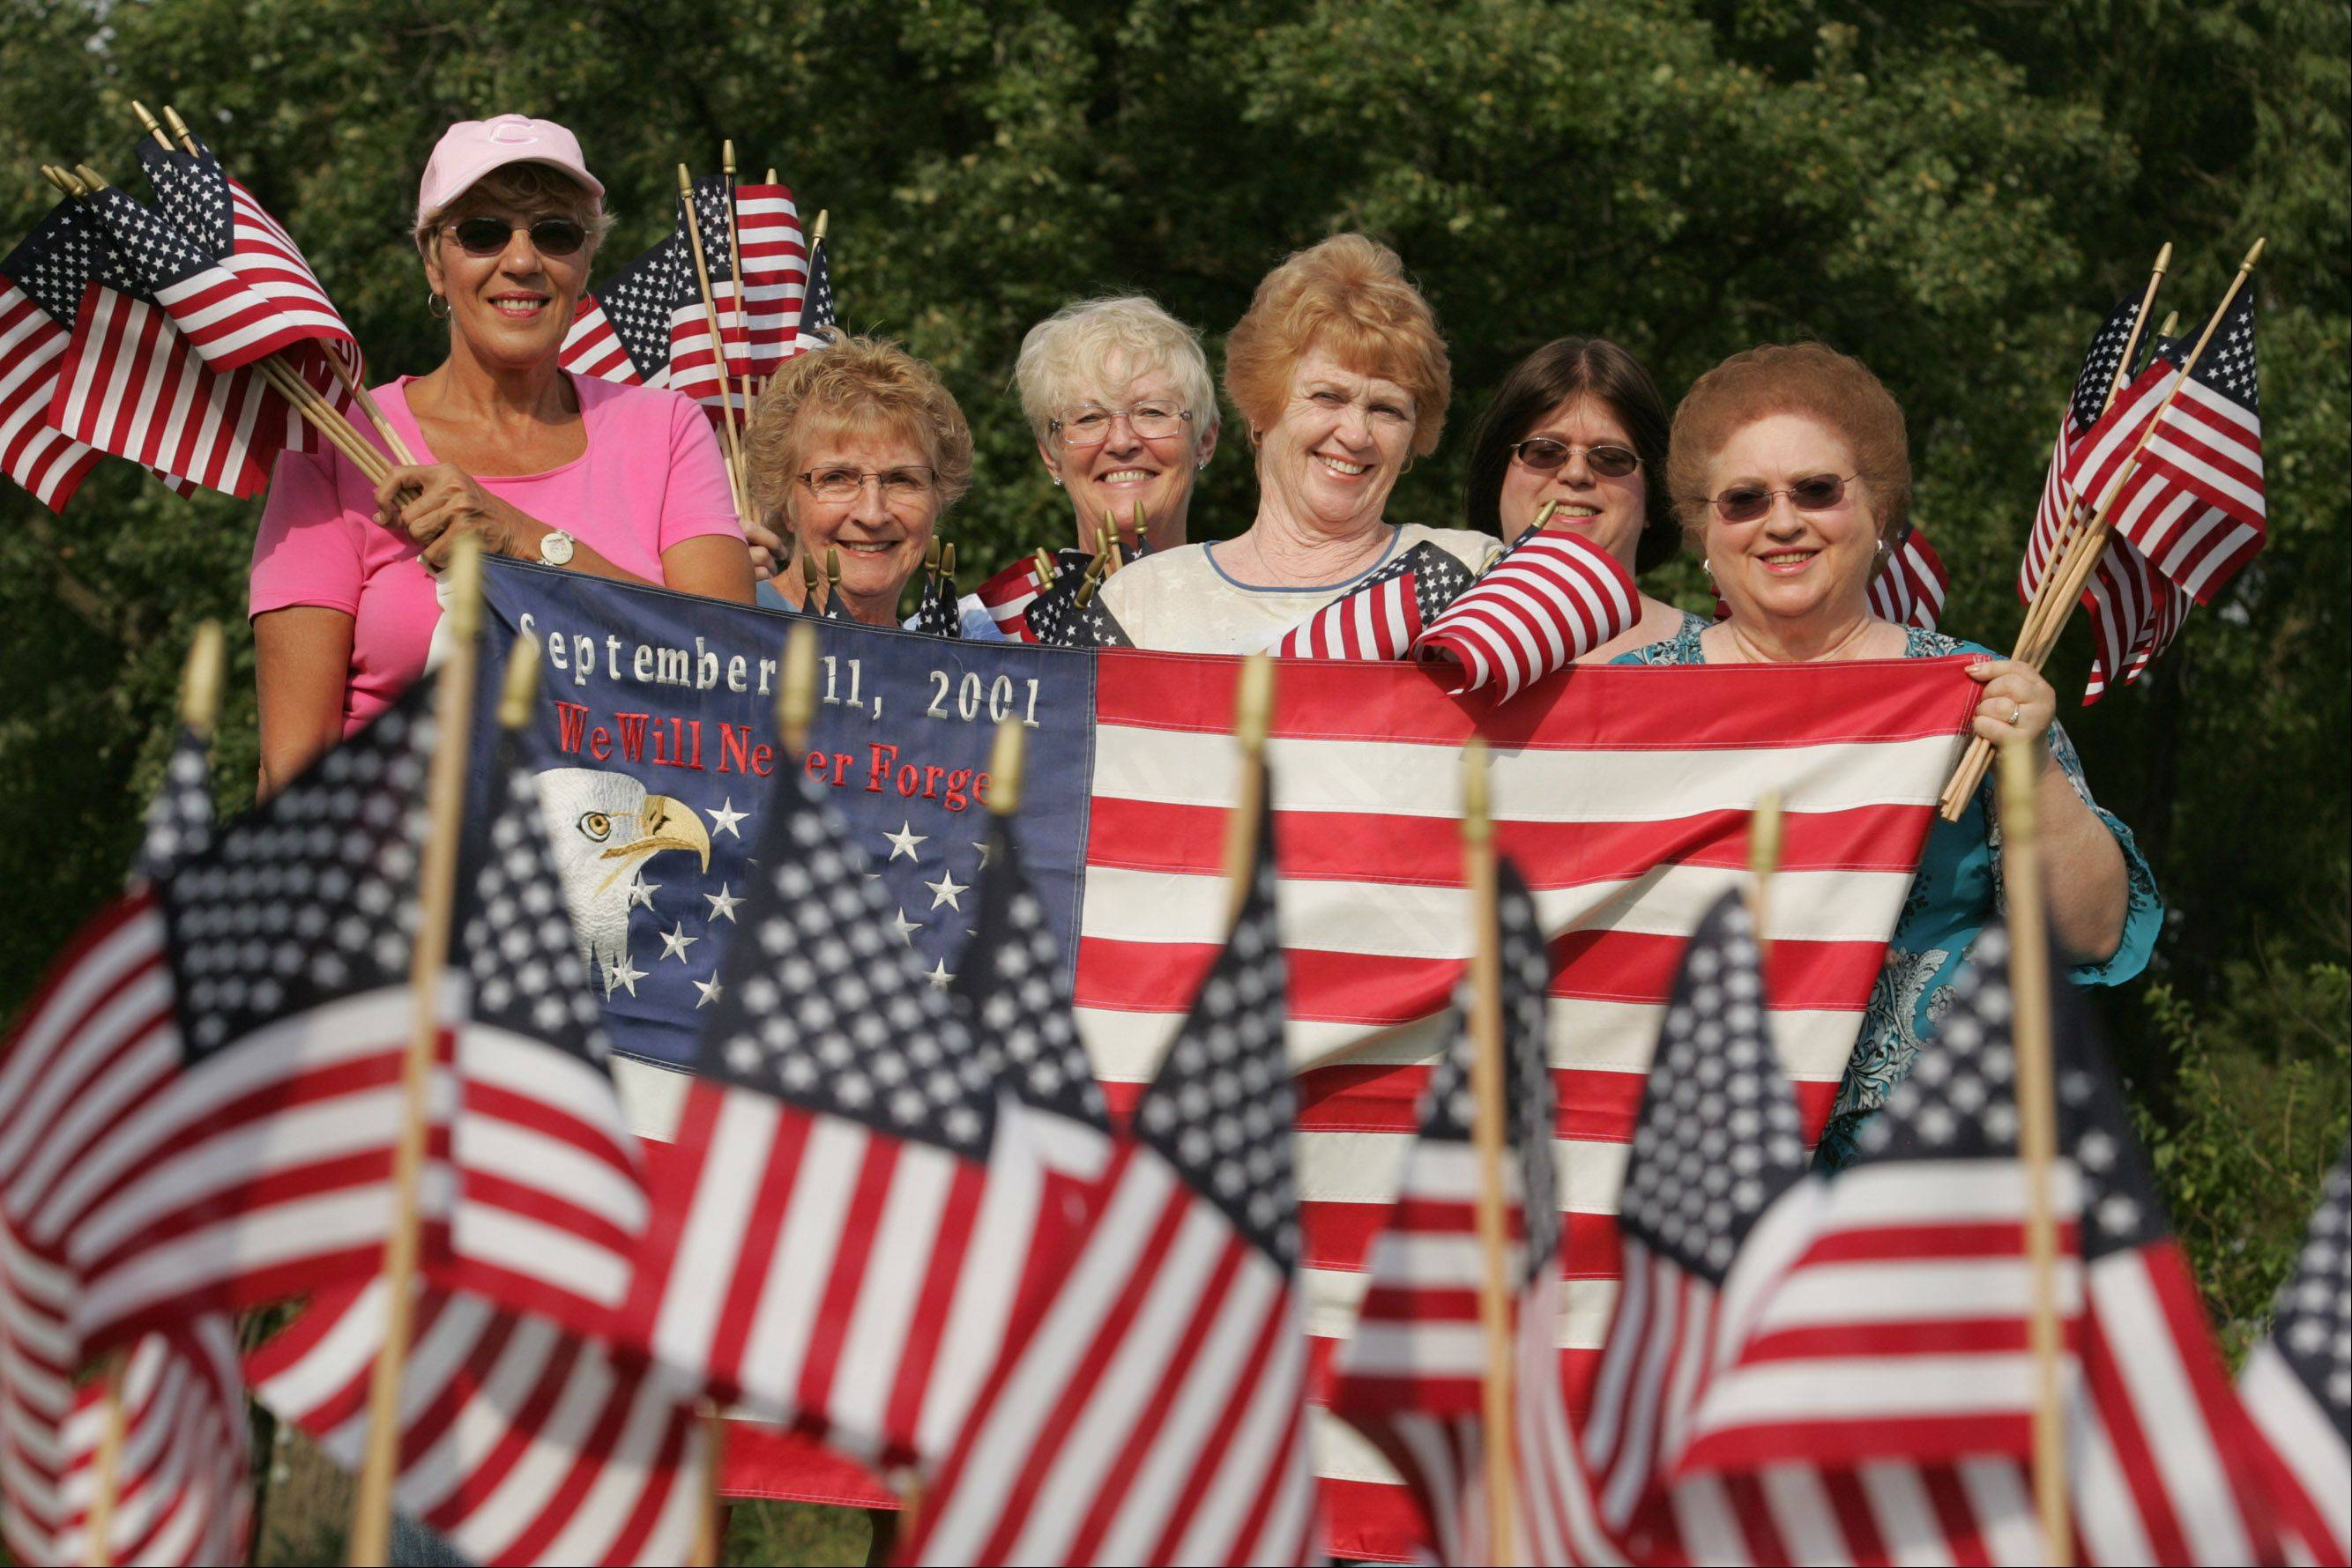 Several Sun City women have started a 9/11 memorial flag project and plan to place more than 3,000 flags out for the 10th anniversary. From left are Linda Bahwell, Barb Soracco, Peg Mulhall, Catherine Portera, Michele Neigebauer and Mary Neigebauer.